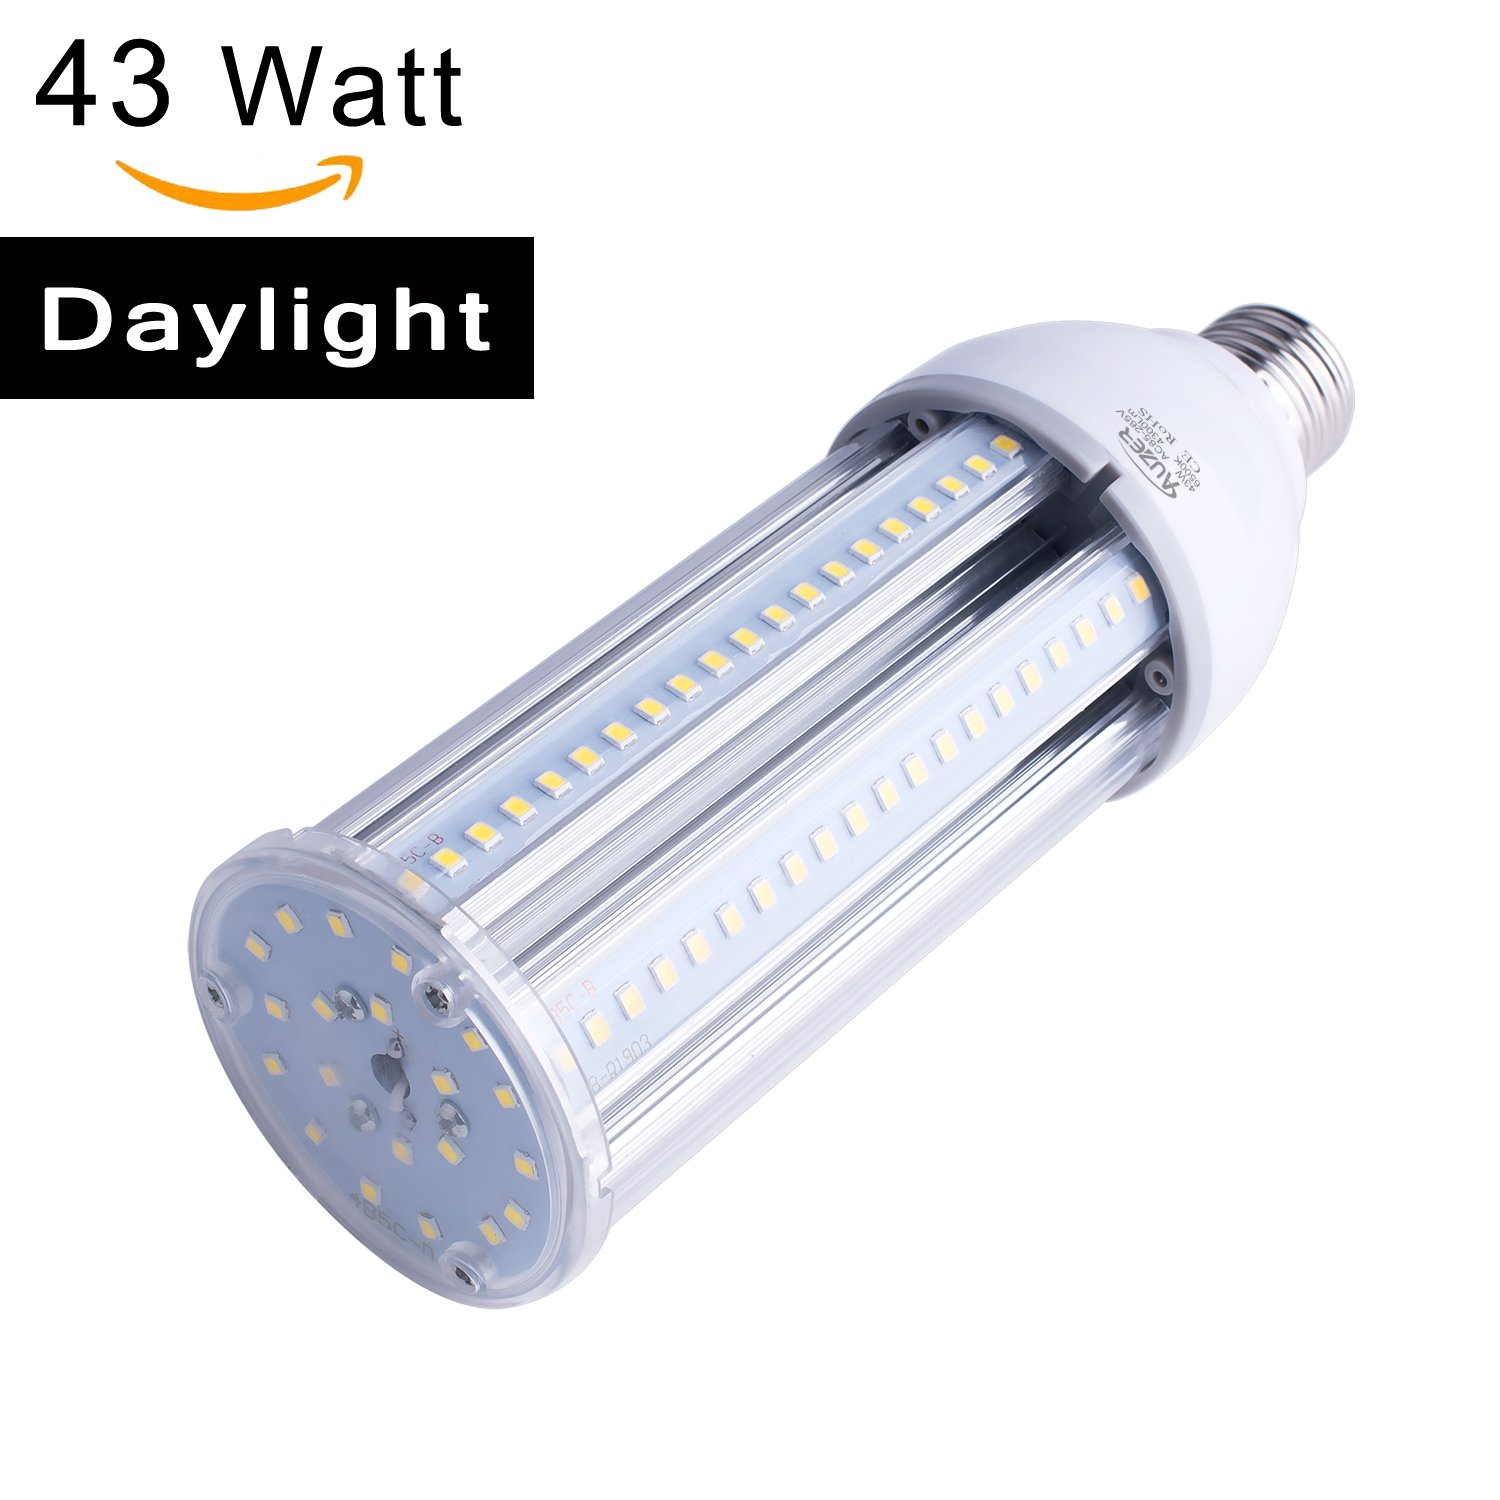 43 Watt LED Corn Bulb Street Light,4300 Lumen 290 Watt Equivalent 6500K,Cool Daylight White LED Area Light,E26 Medium Screw Base,For Indoor Garage Factory Warehouse Barn Backyard,Super Bright,85V-265V